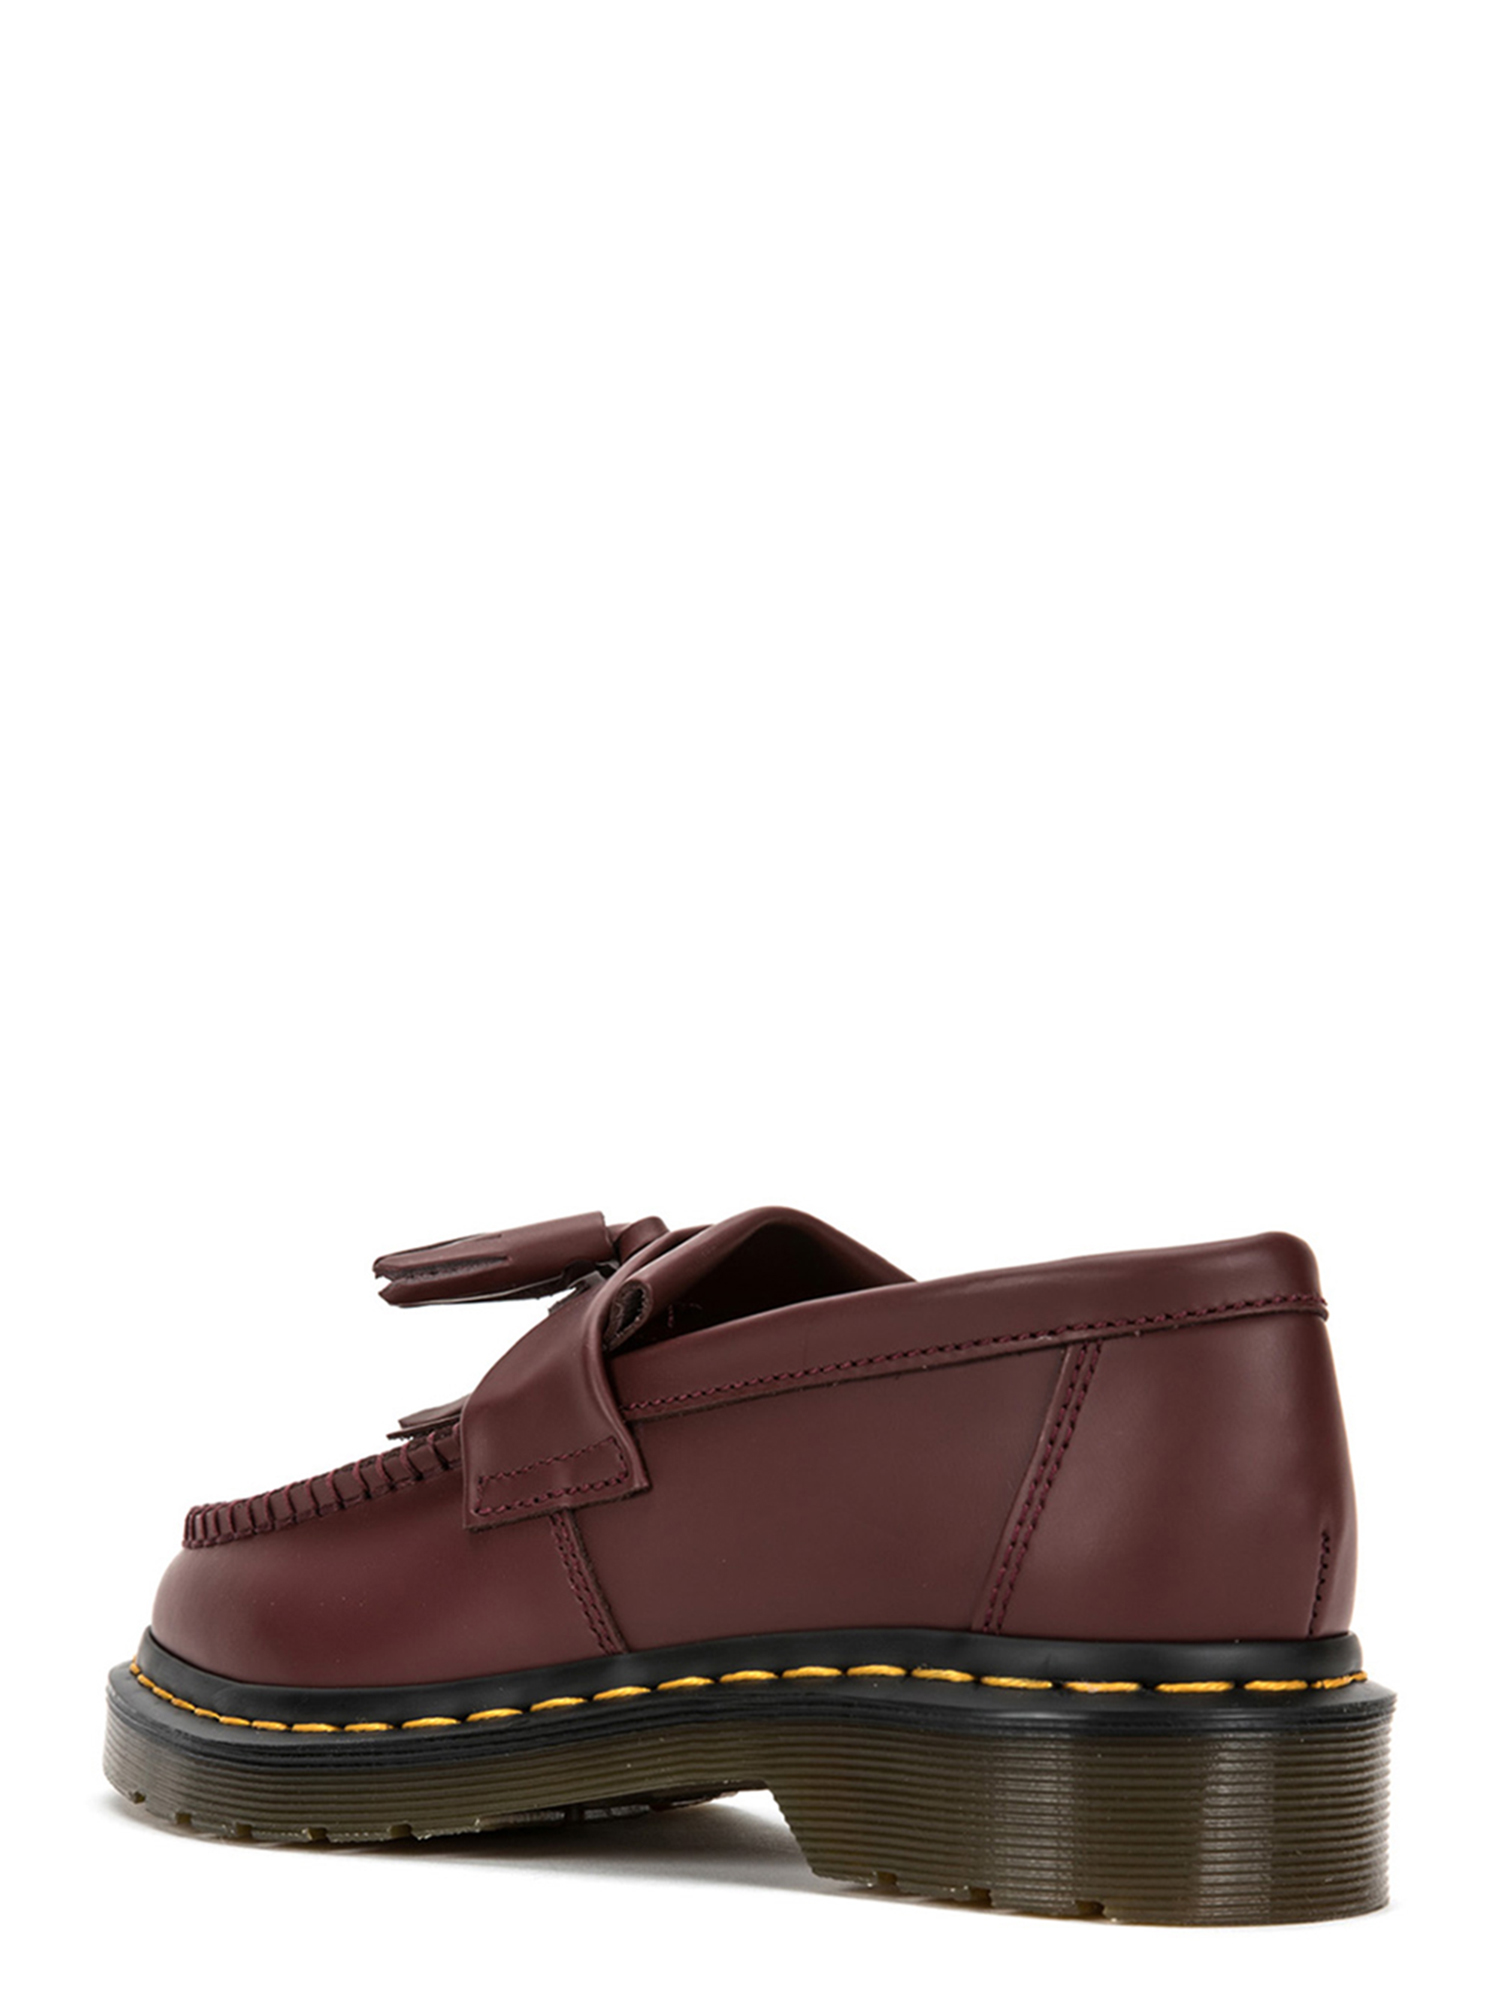 Dr. Martens Adrian Yellow Stitch Loafers 22209600 Cherry Red